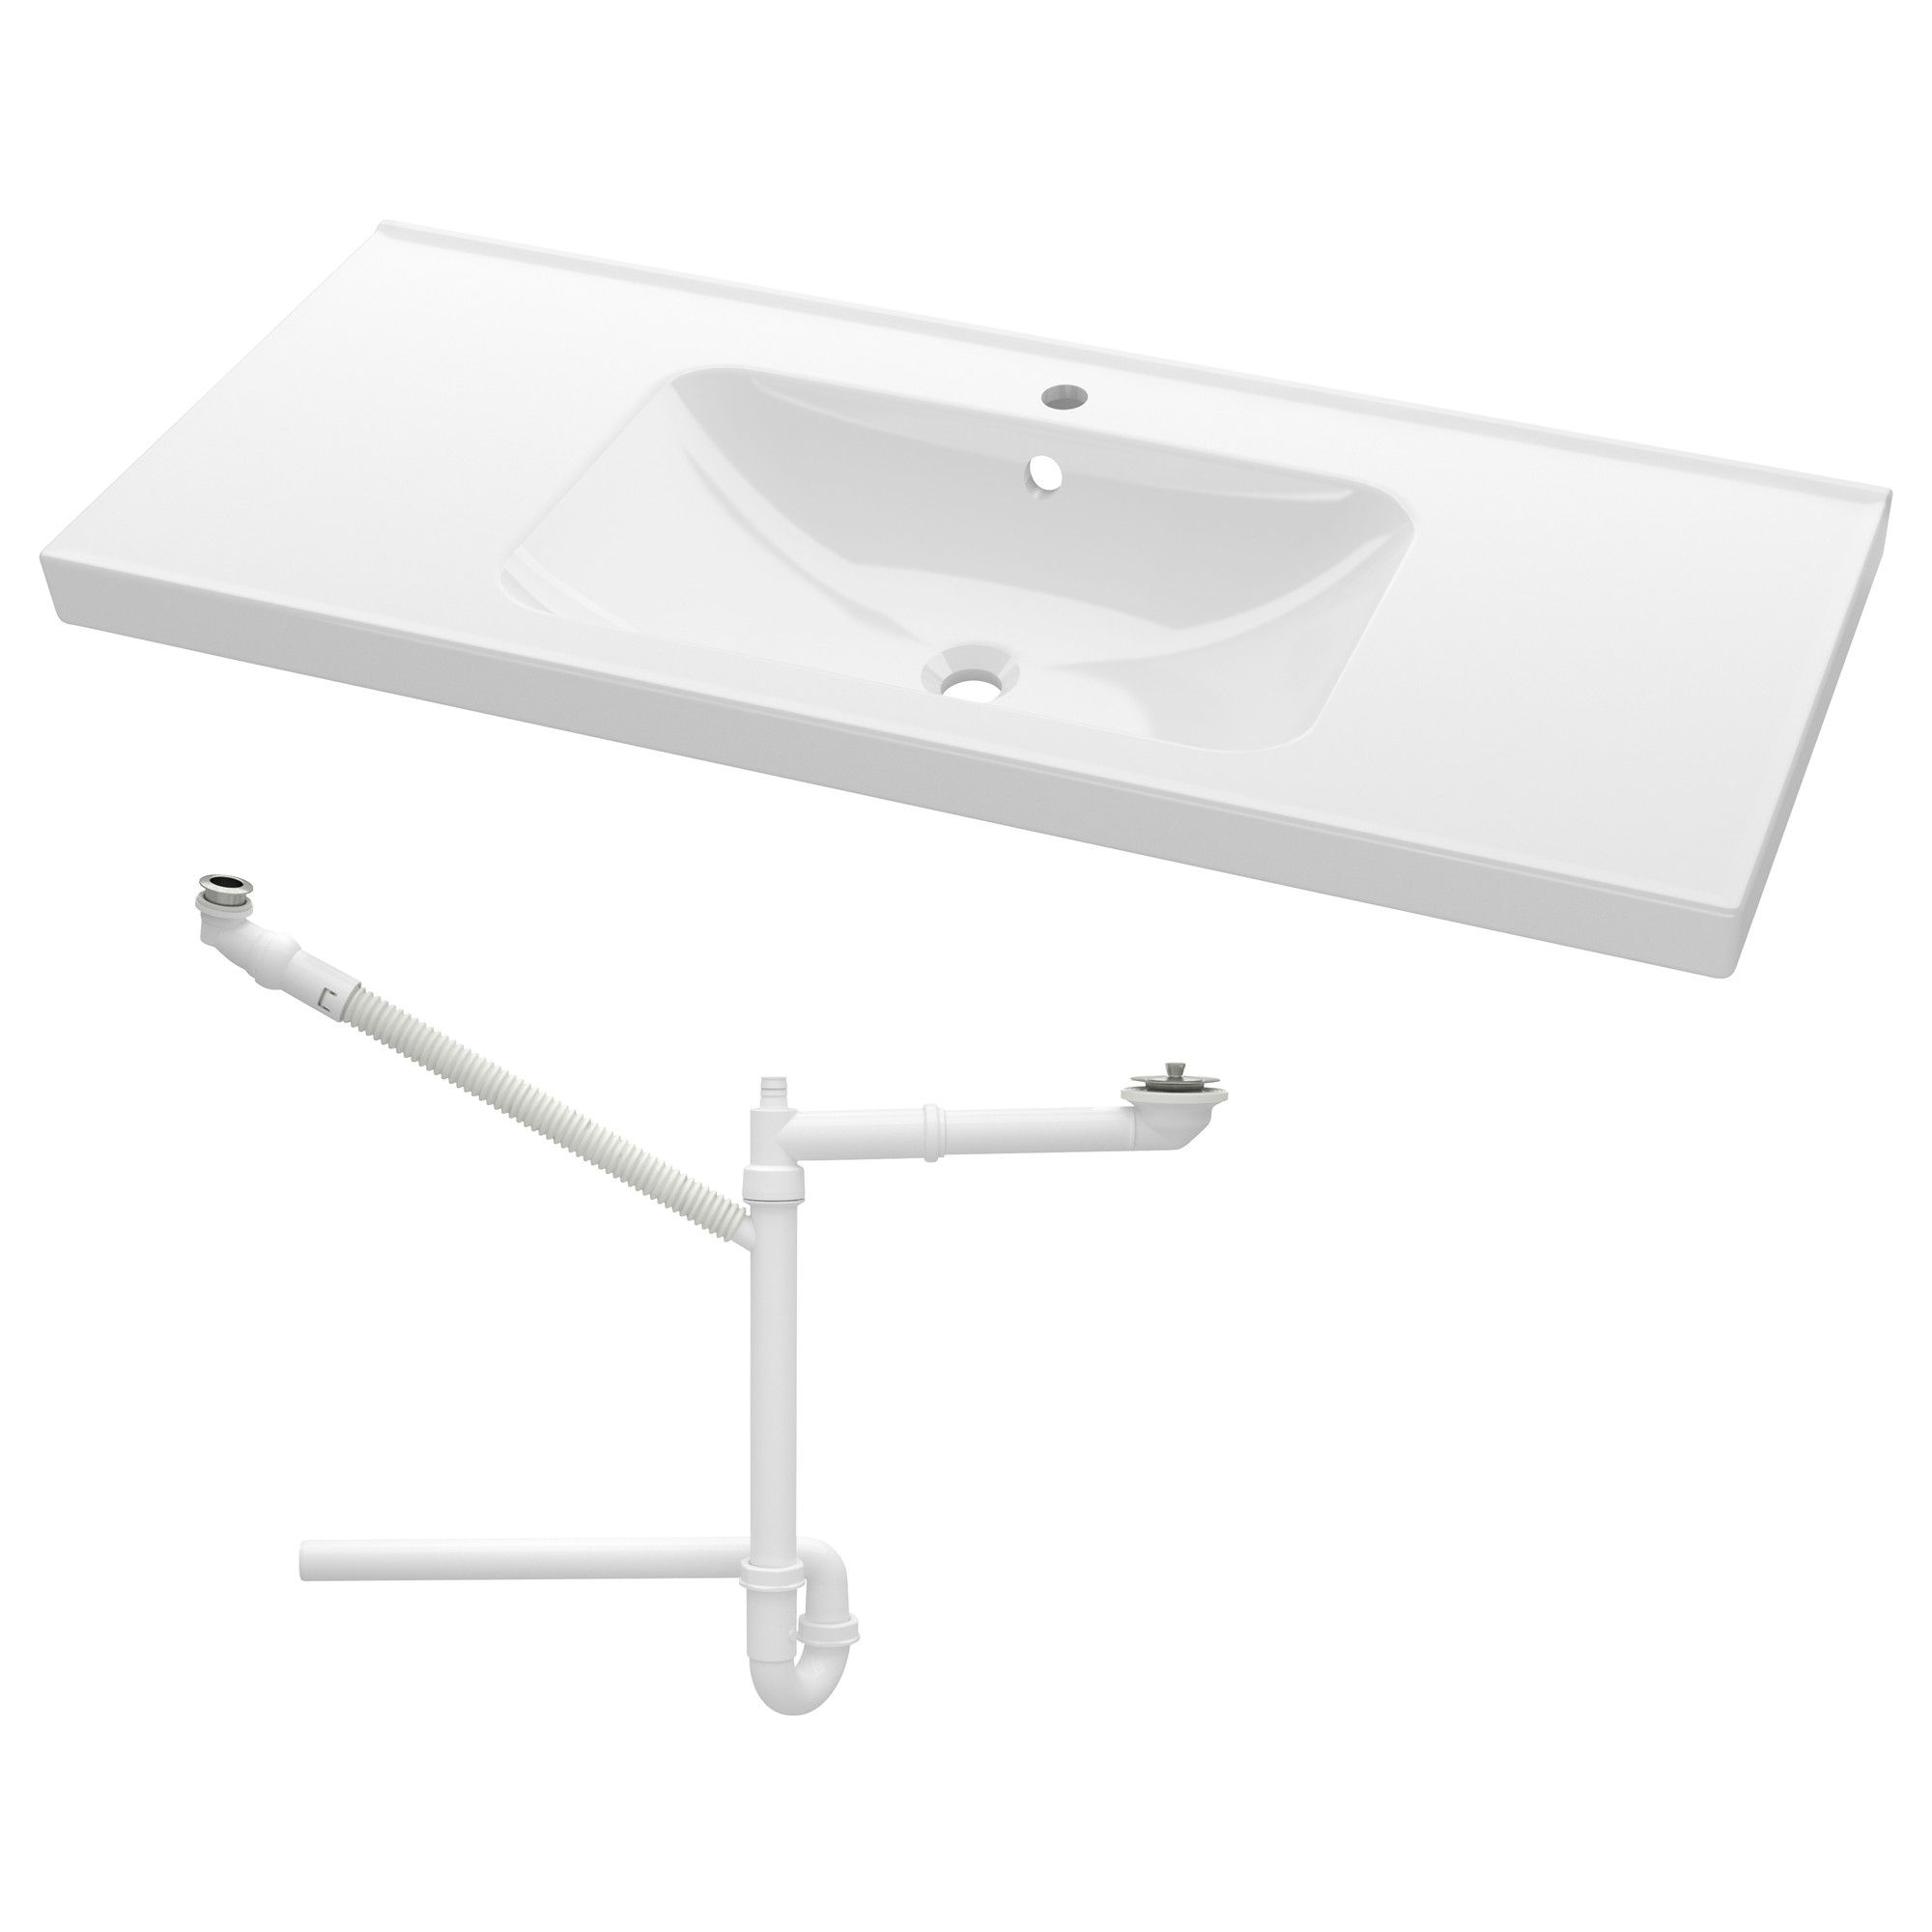 odensvik lavabo simple 100x49x6 cm ikea bathroom ideas